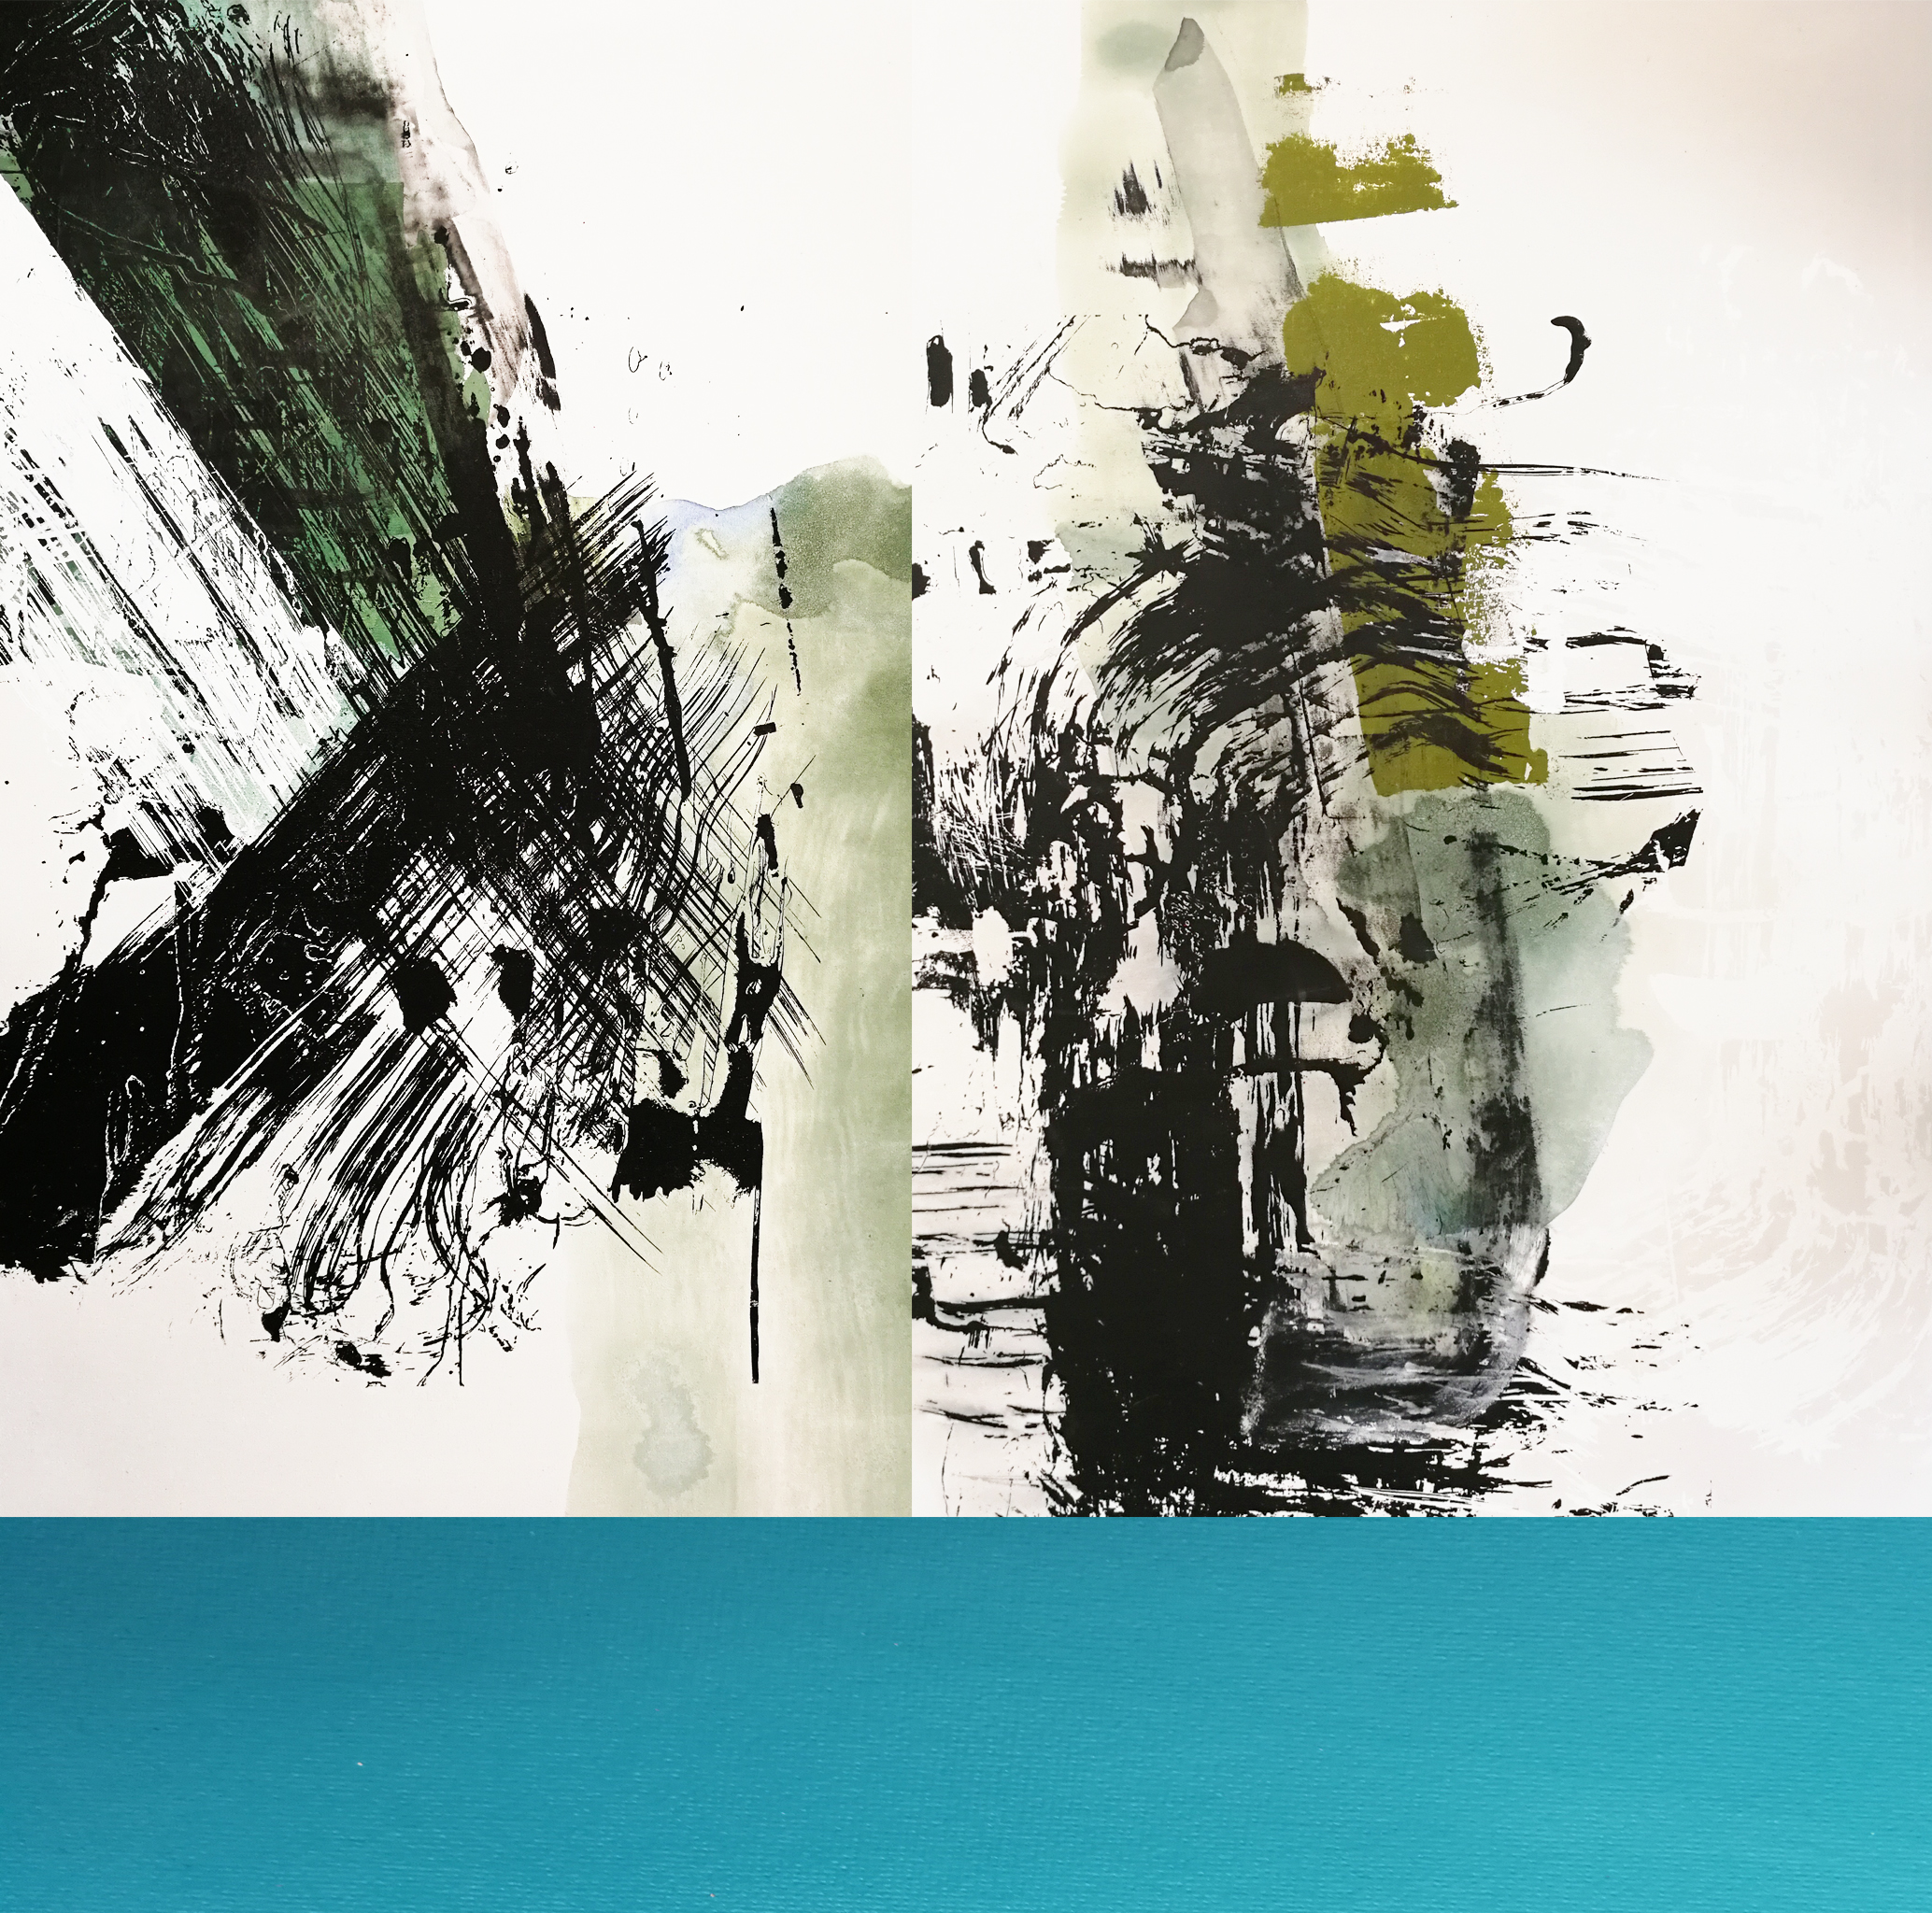 Composition #2 Triptych with Turquoise Stripe , 127 x 130 cm, silkscreen paint and pigments on linen, 2018